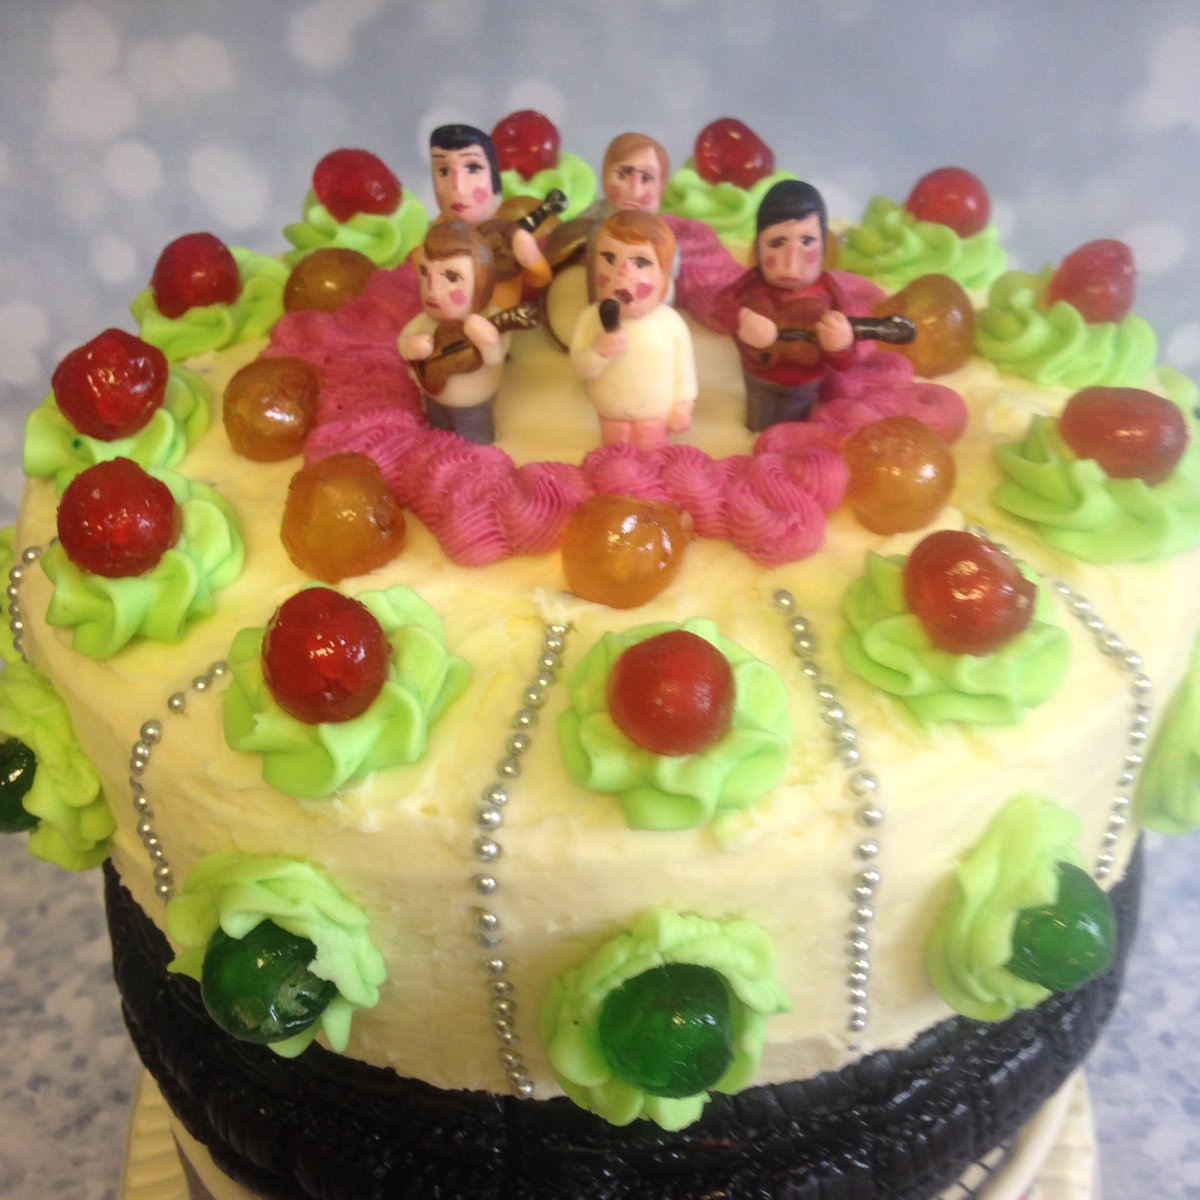 Liverpool Cake Co on Twitter: \